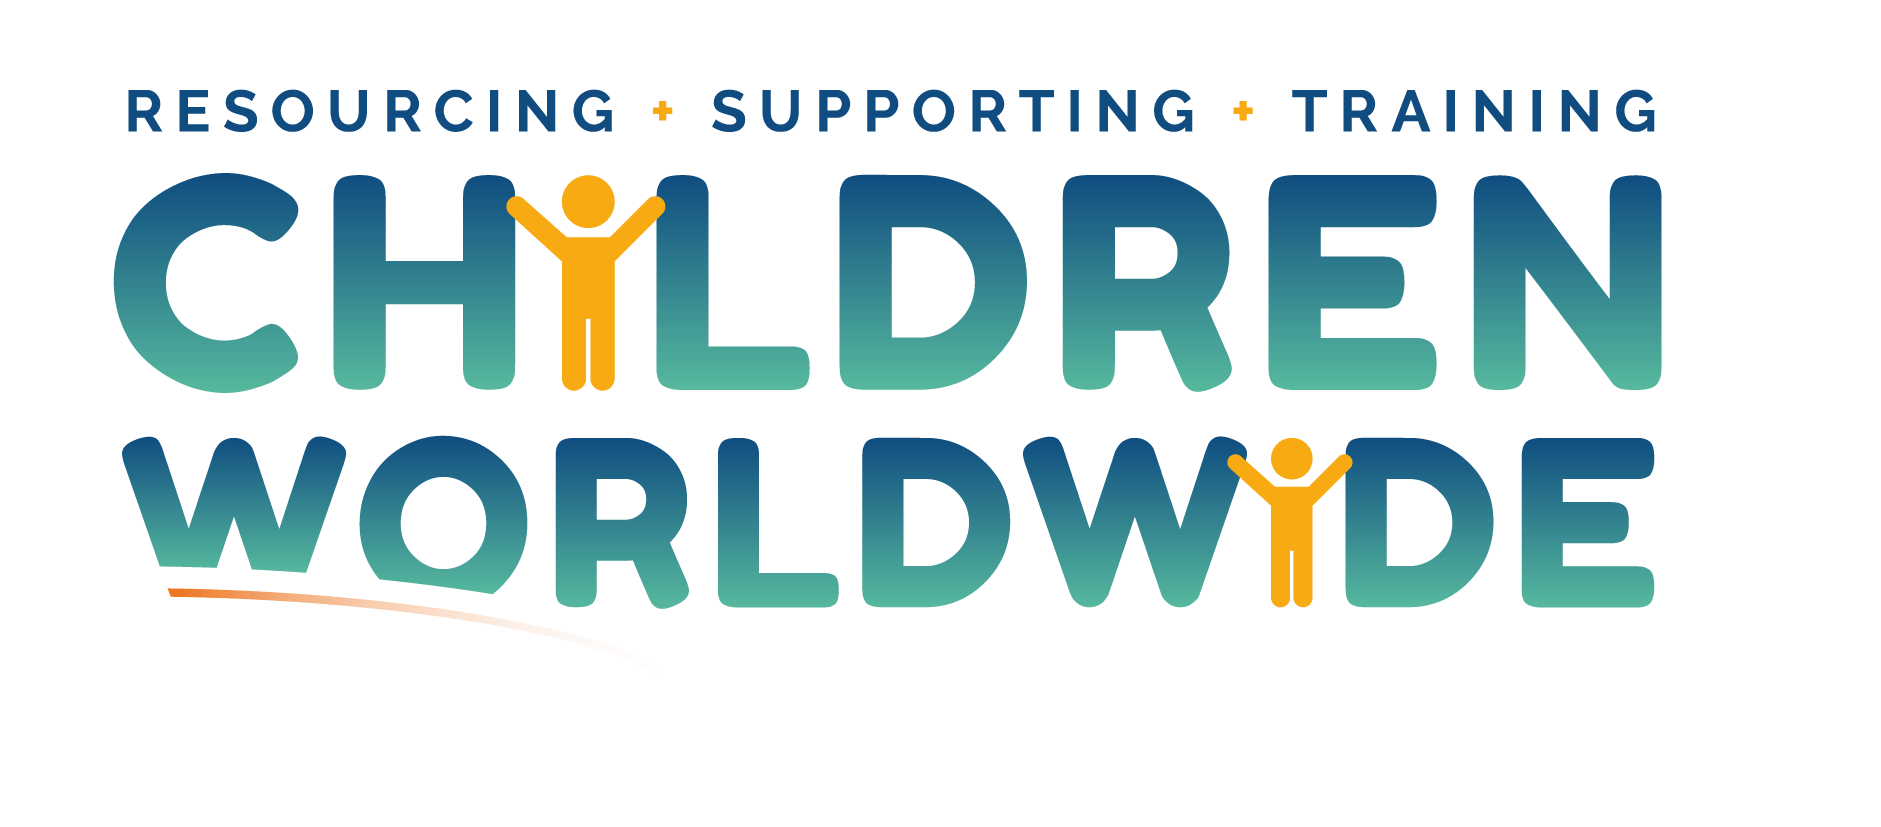 The logo for Children Worldwide. The strap line reads: Resourcing, Supporting, Training